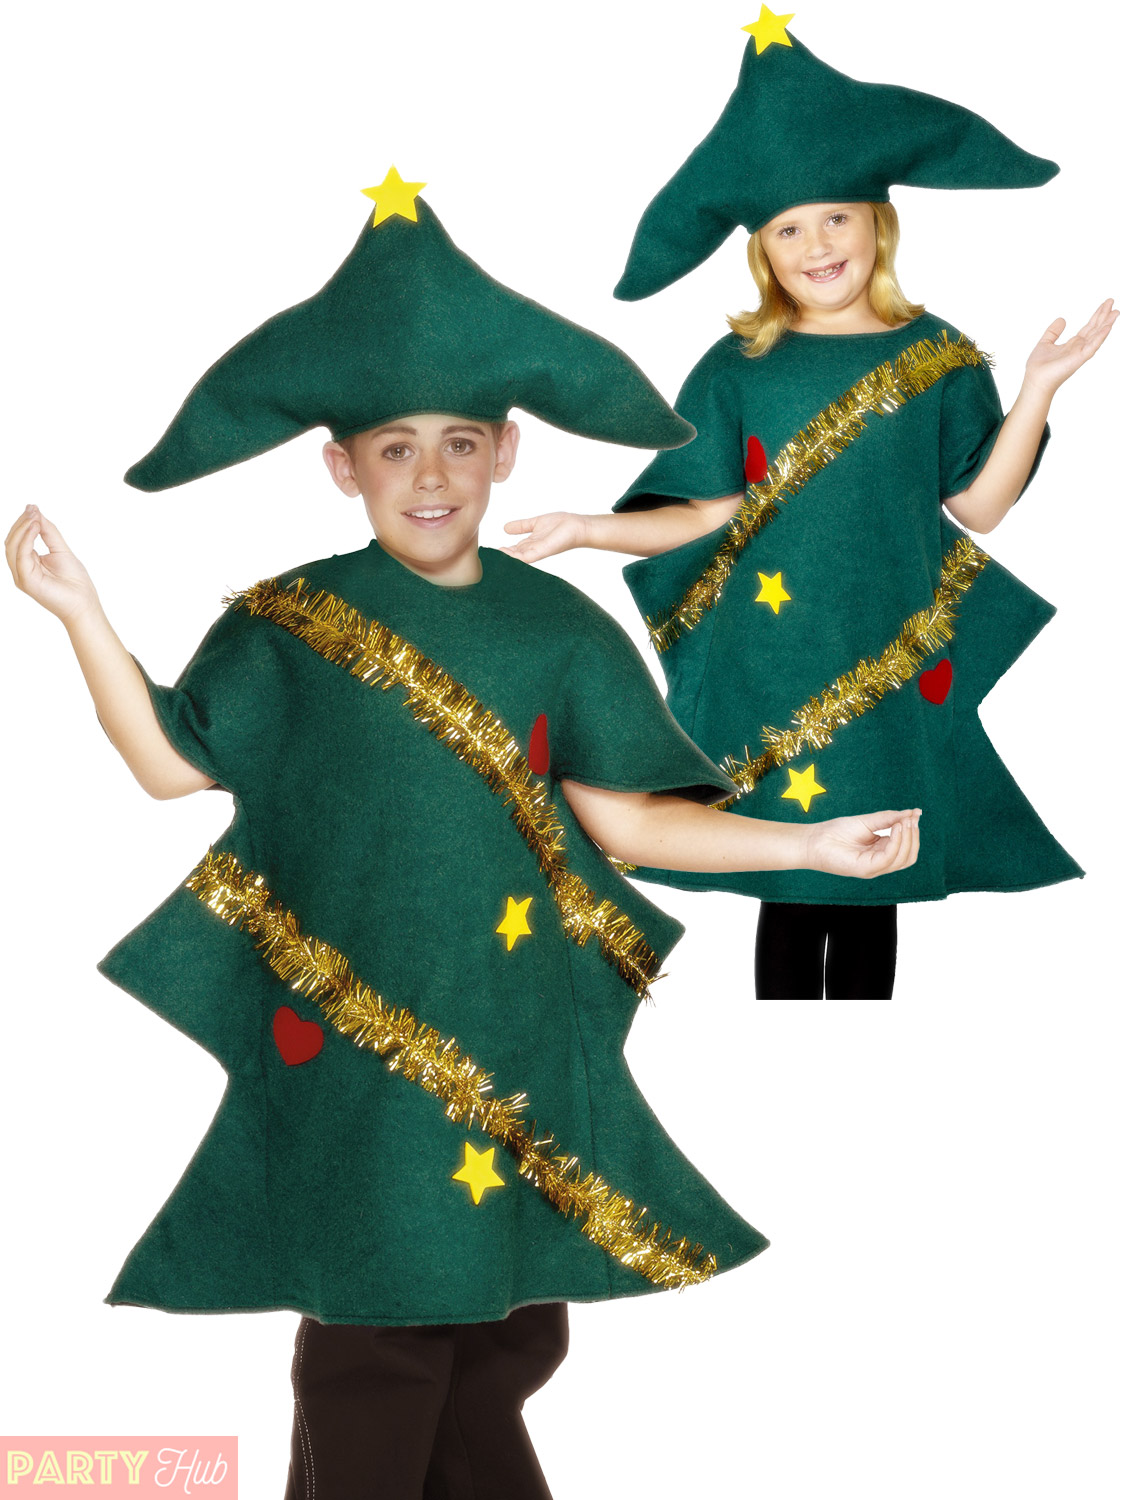 Christmas is a magical time of year. Embrace the Season by dressing as Santa Claus or one of his helpful Elves. Anytime Costumes has a huge selection of Holiday costumes and accessories to make every celebration complete.